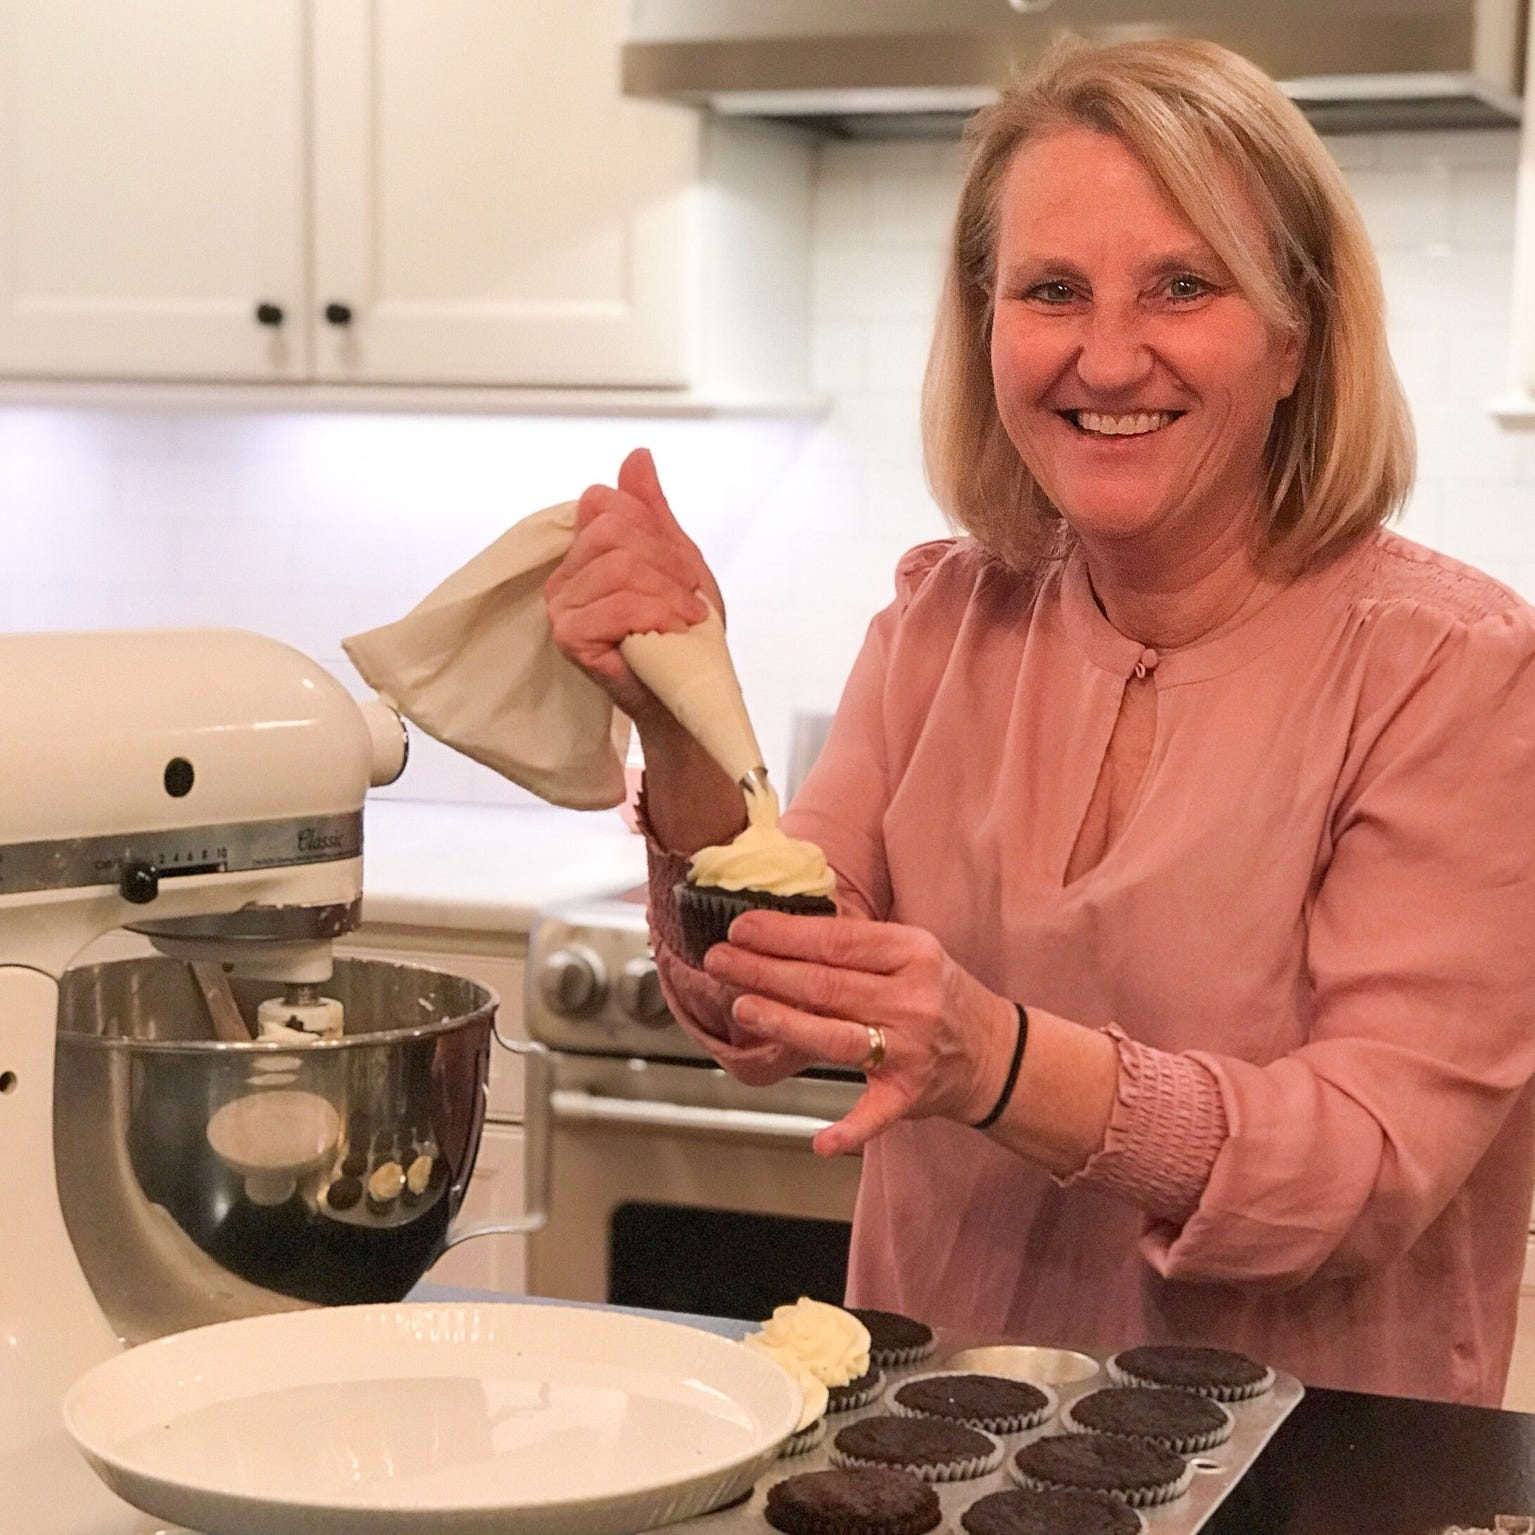 Rockland teacher bakes up special cookies to raise funds for Rare Disease Day, Feb. 28